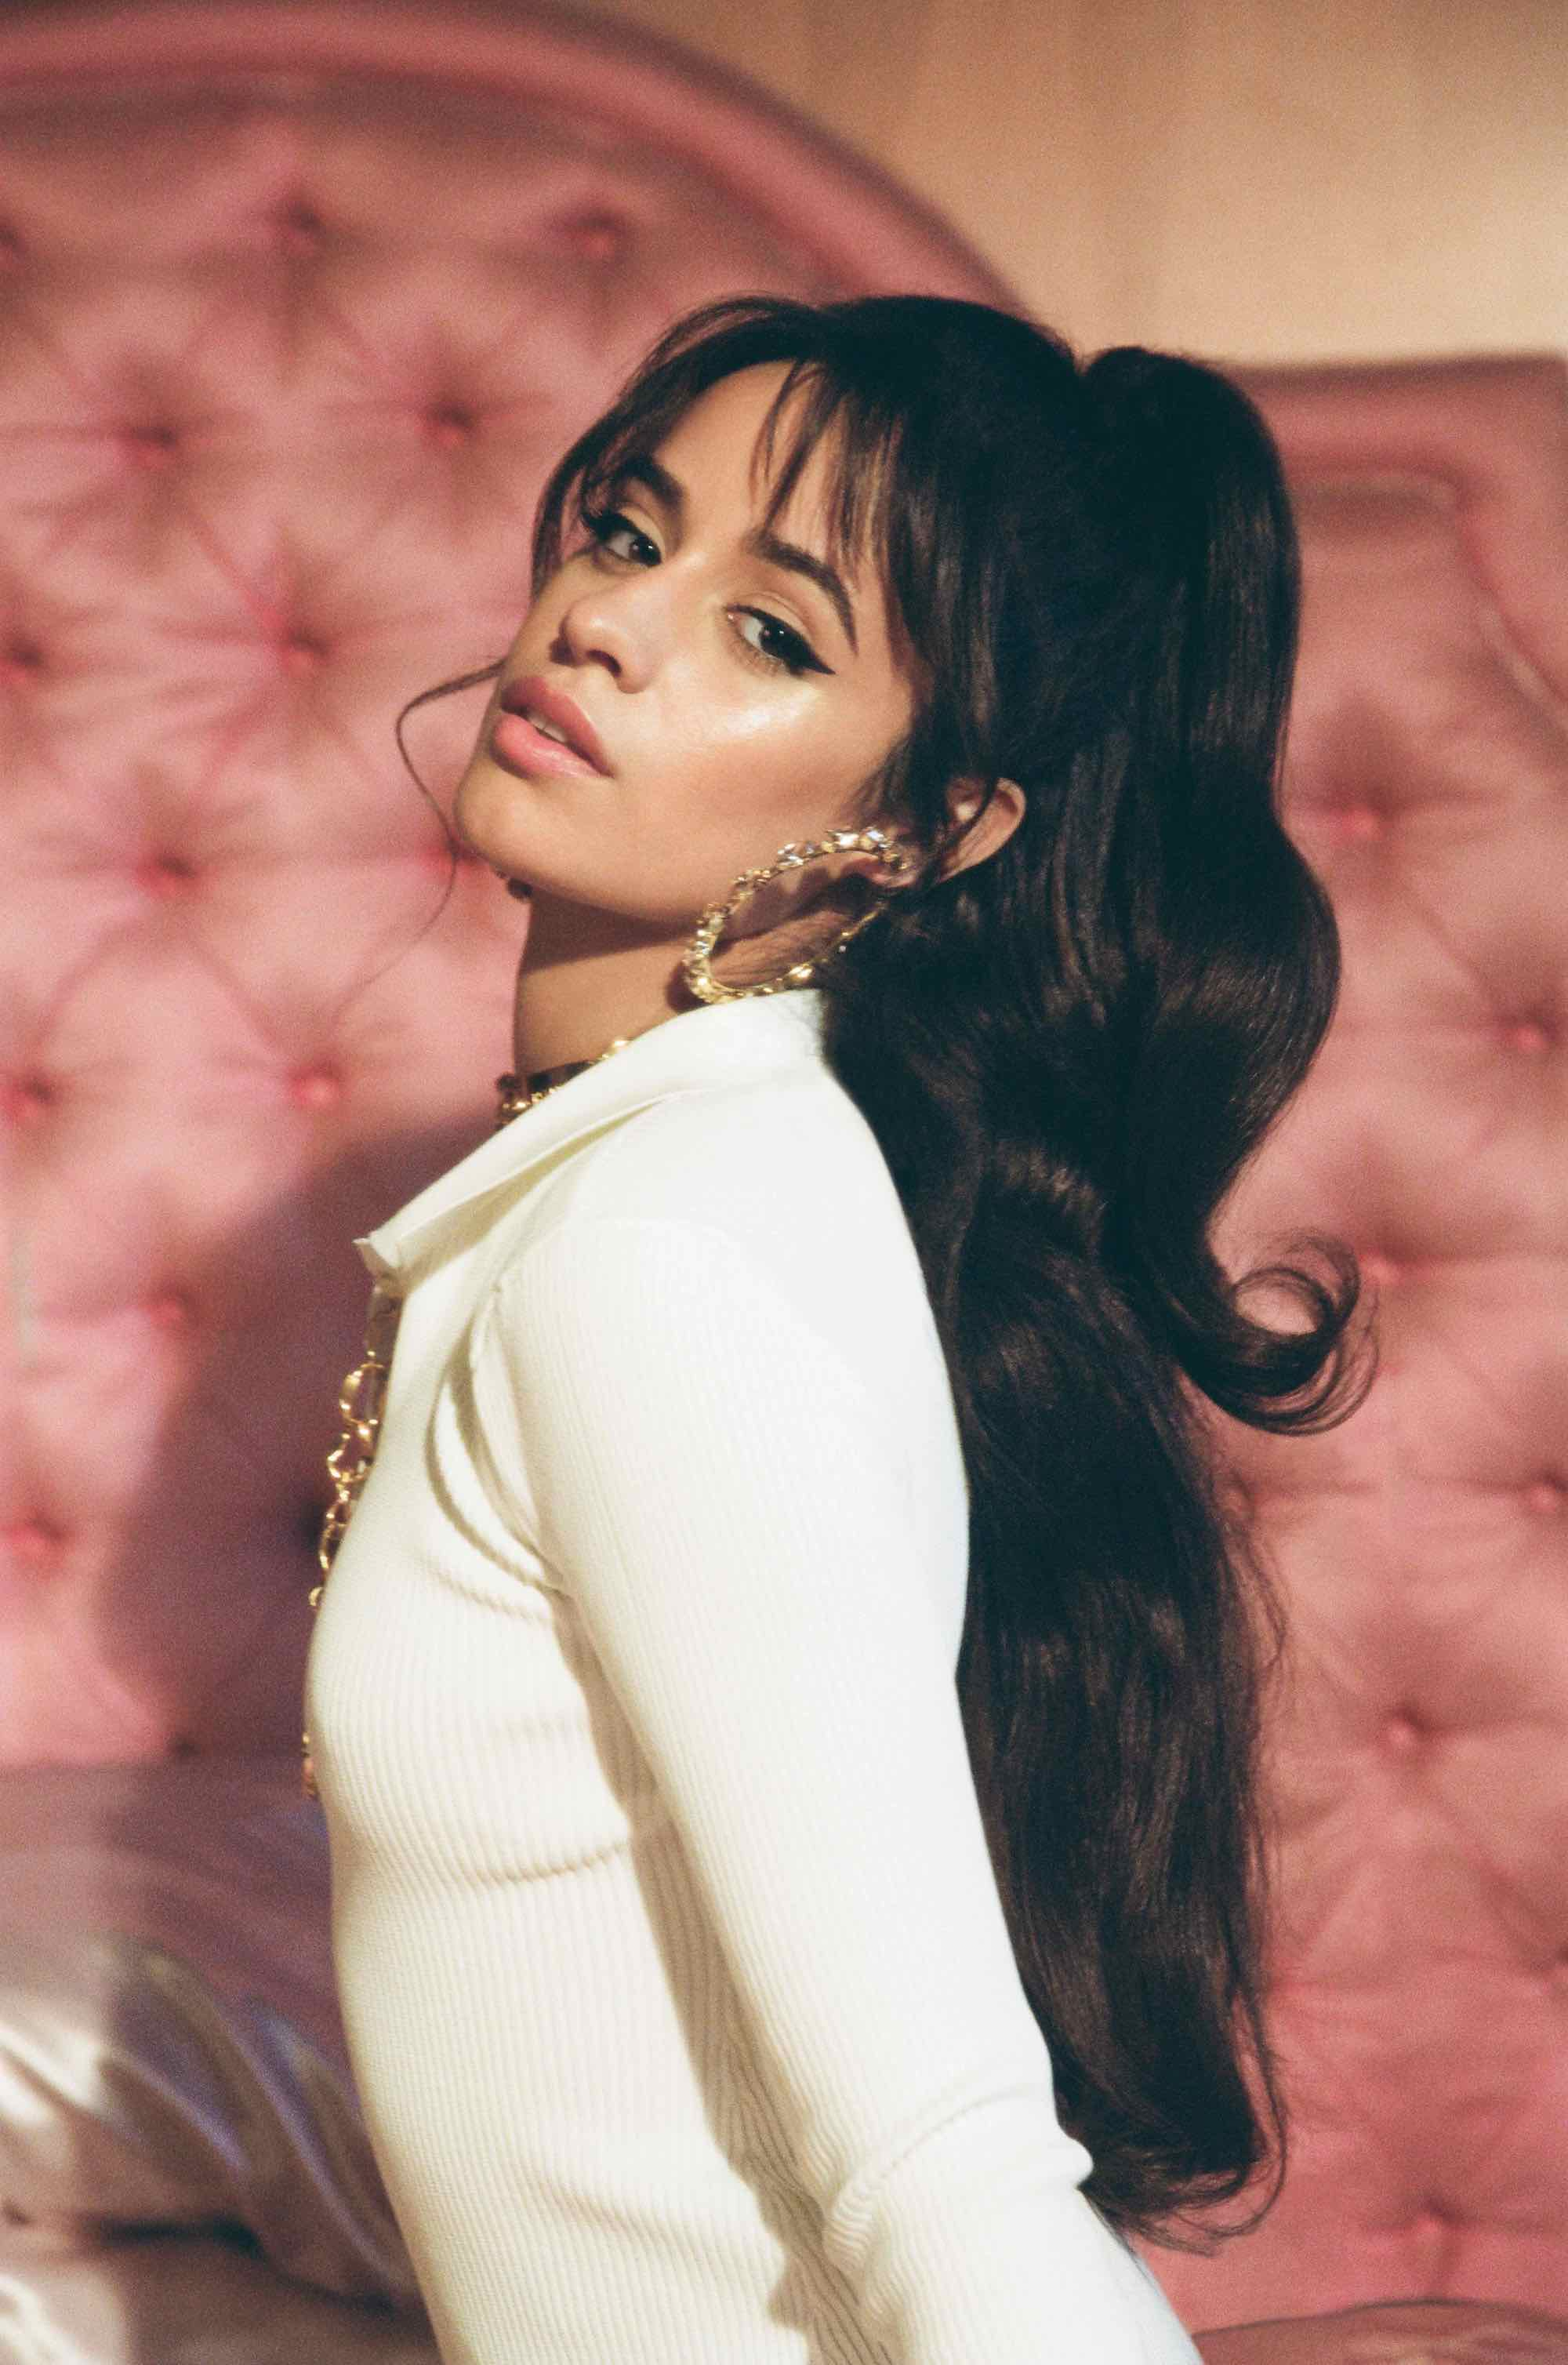 Wonderland Autumn 19 issue interview Camila Cabello